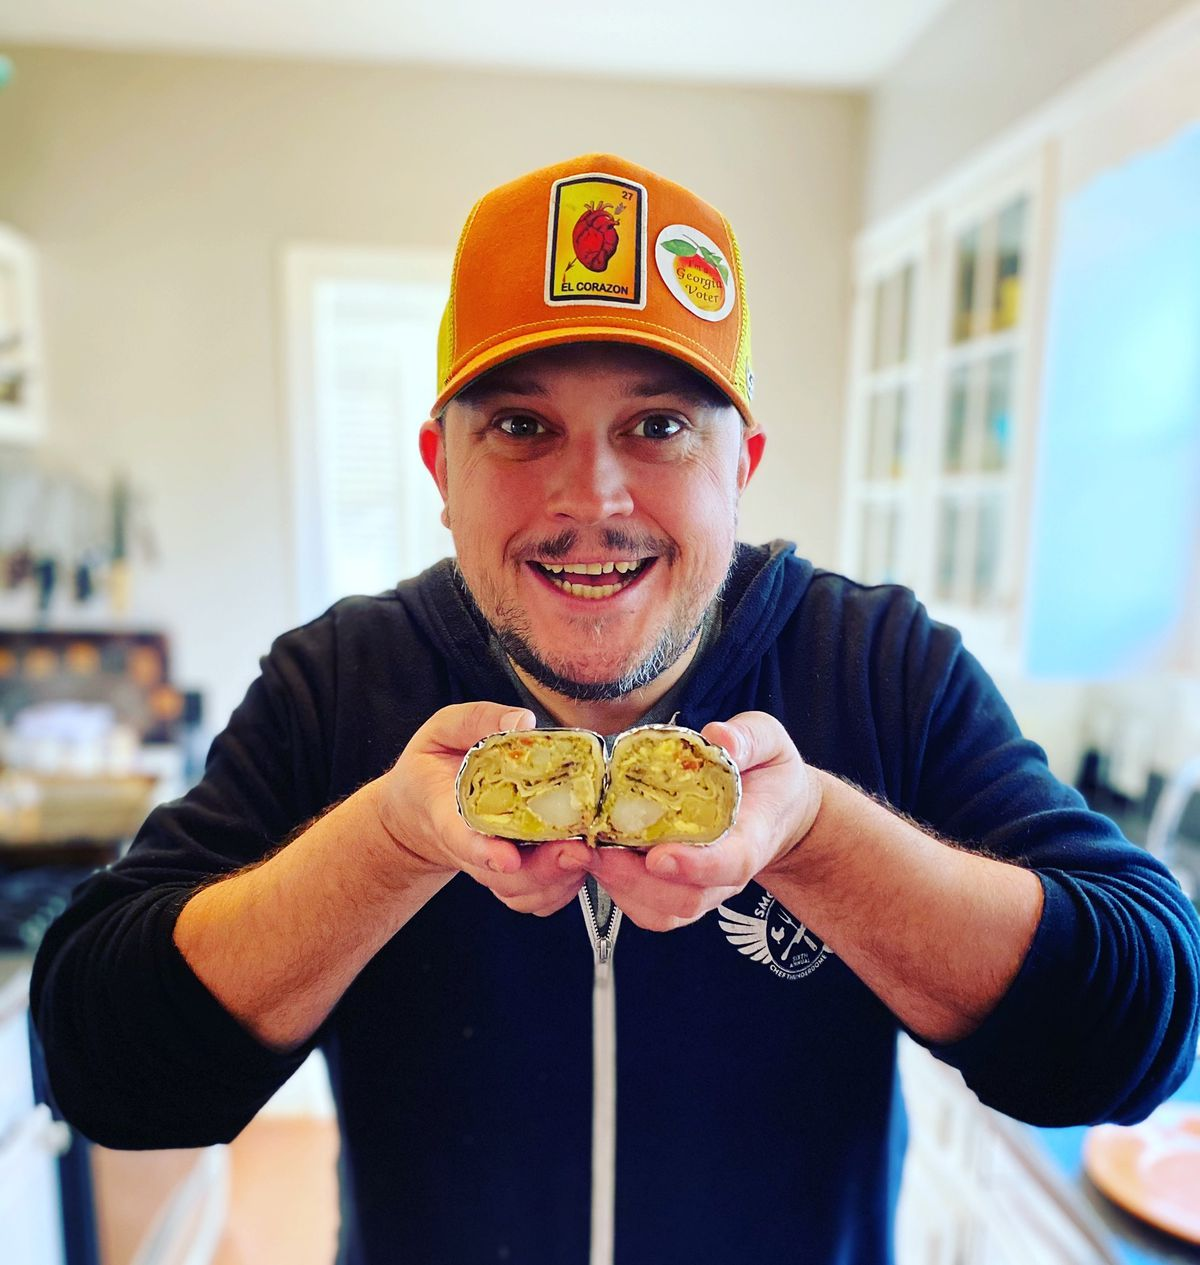 Chef Nick Melvin smiling in a navy blue hoodie and orange trucker ball cap holding an egg, potato, and cheese burrito cut in half in two hands